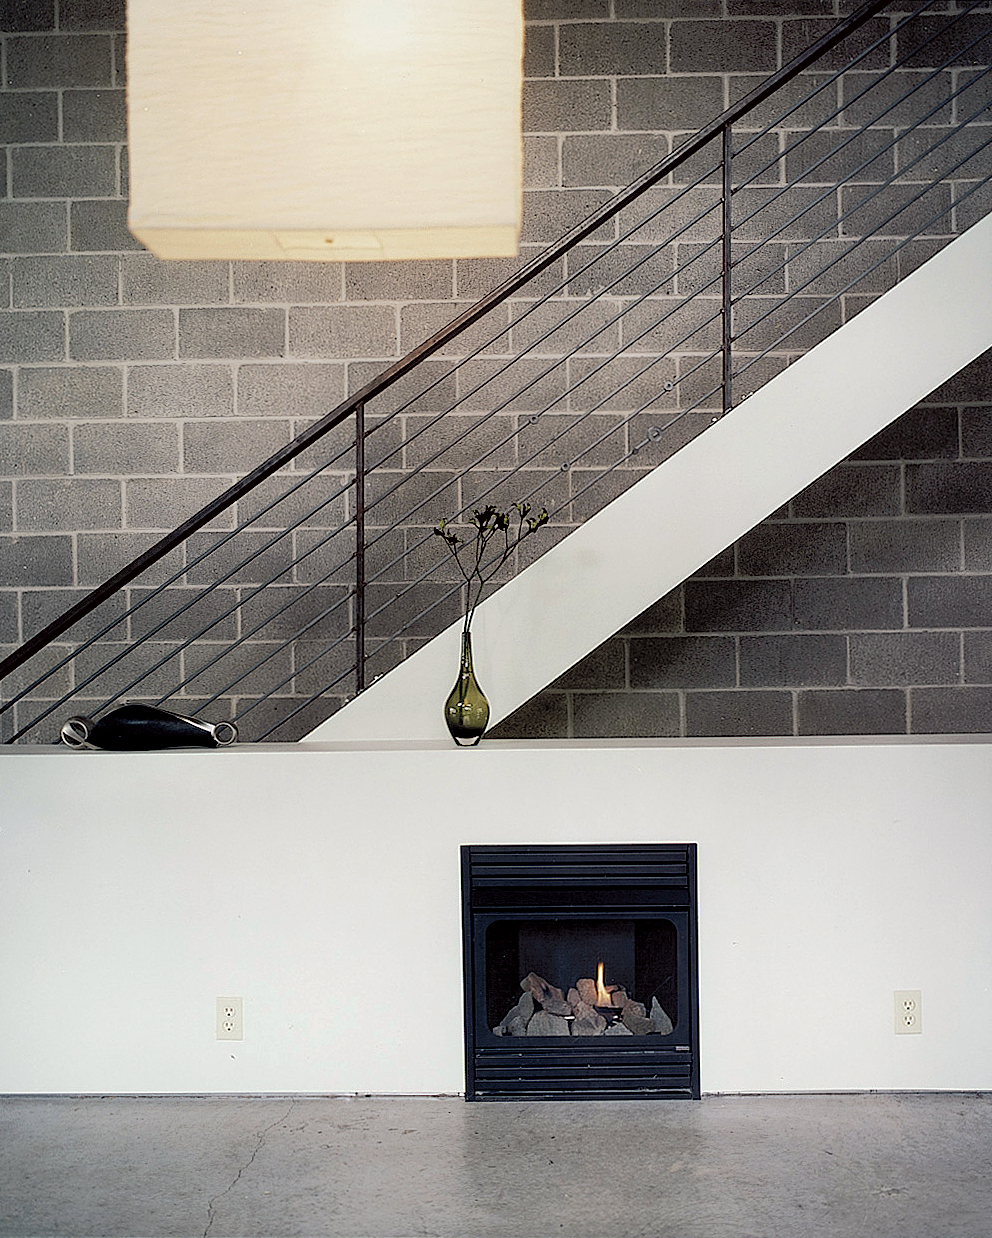 Still life with IKEA lampshade and ventless fireplace. The unfinished, black, welded- steel railing borders steps made of framing lumber, which emit a friendly, old-fashioned creak as Walz treads up and down.